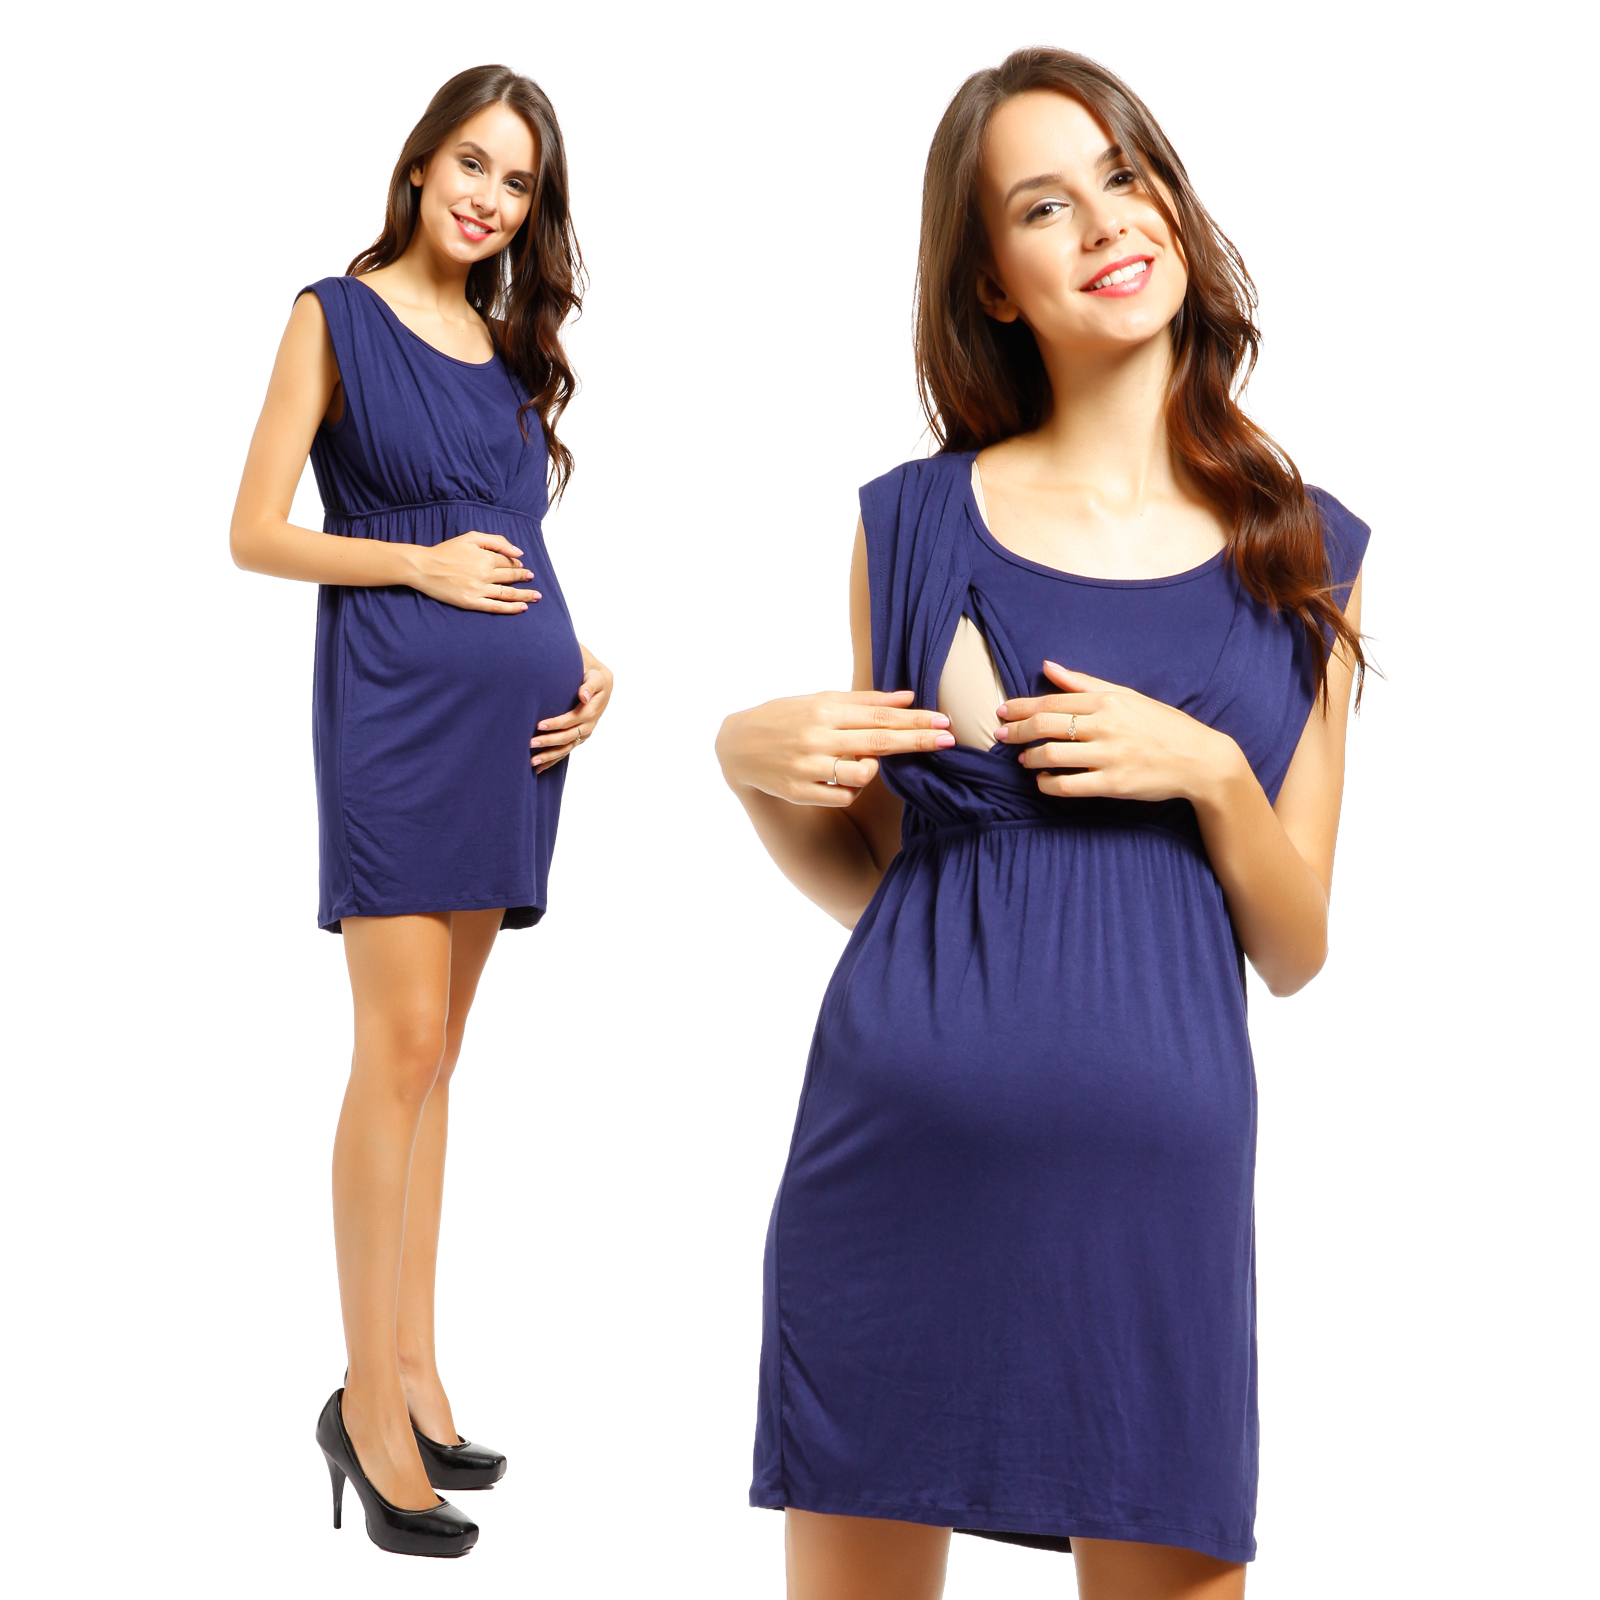 Pregnant Maternity 2in 1 Clothes Nursing Tops ...